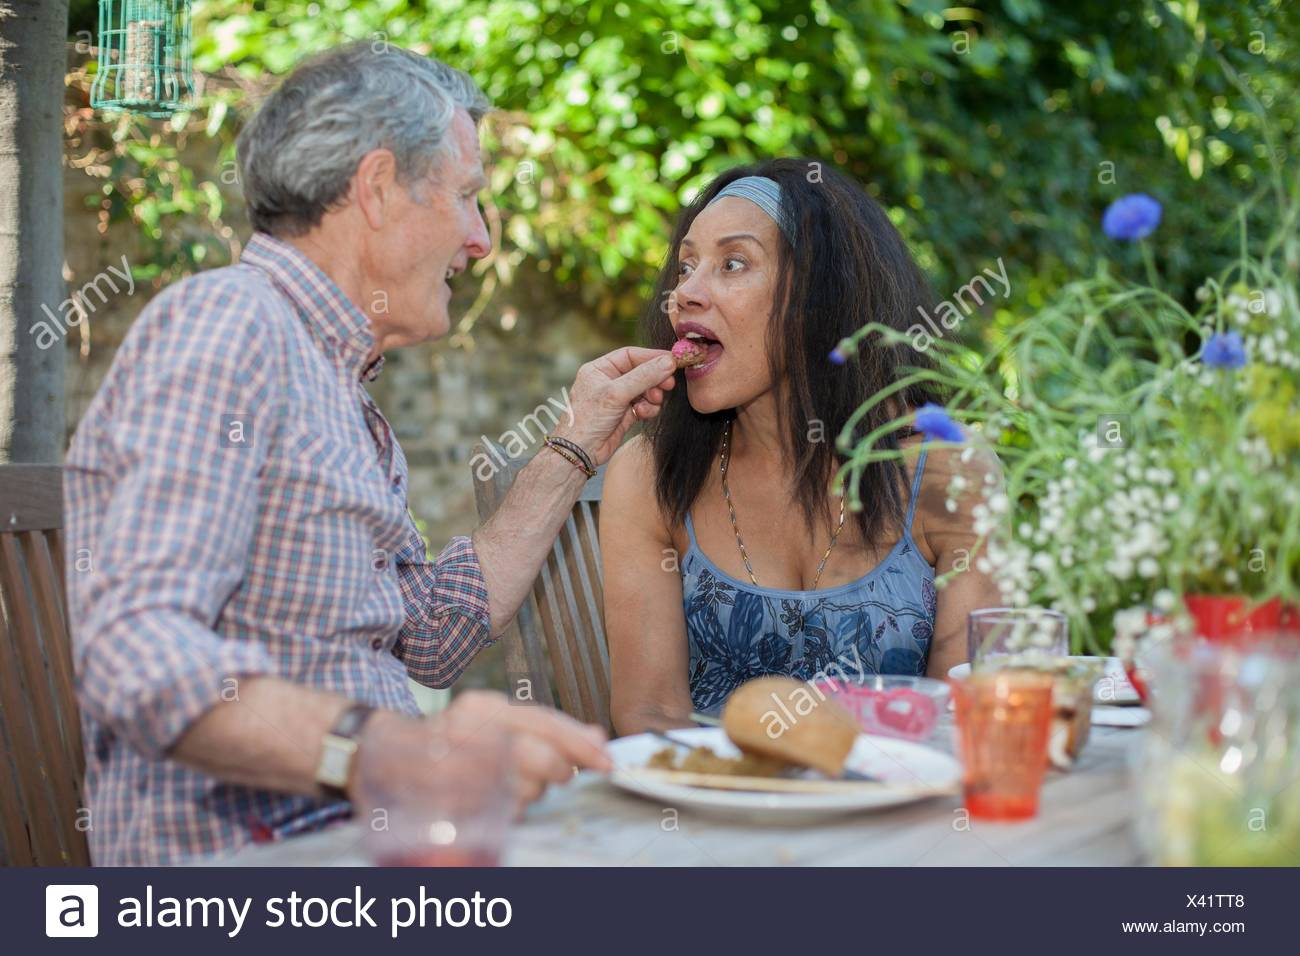 Senior couple eating meal outdoors - Stock Image